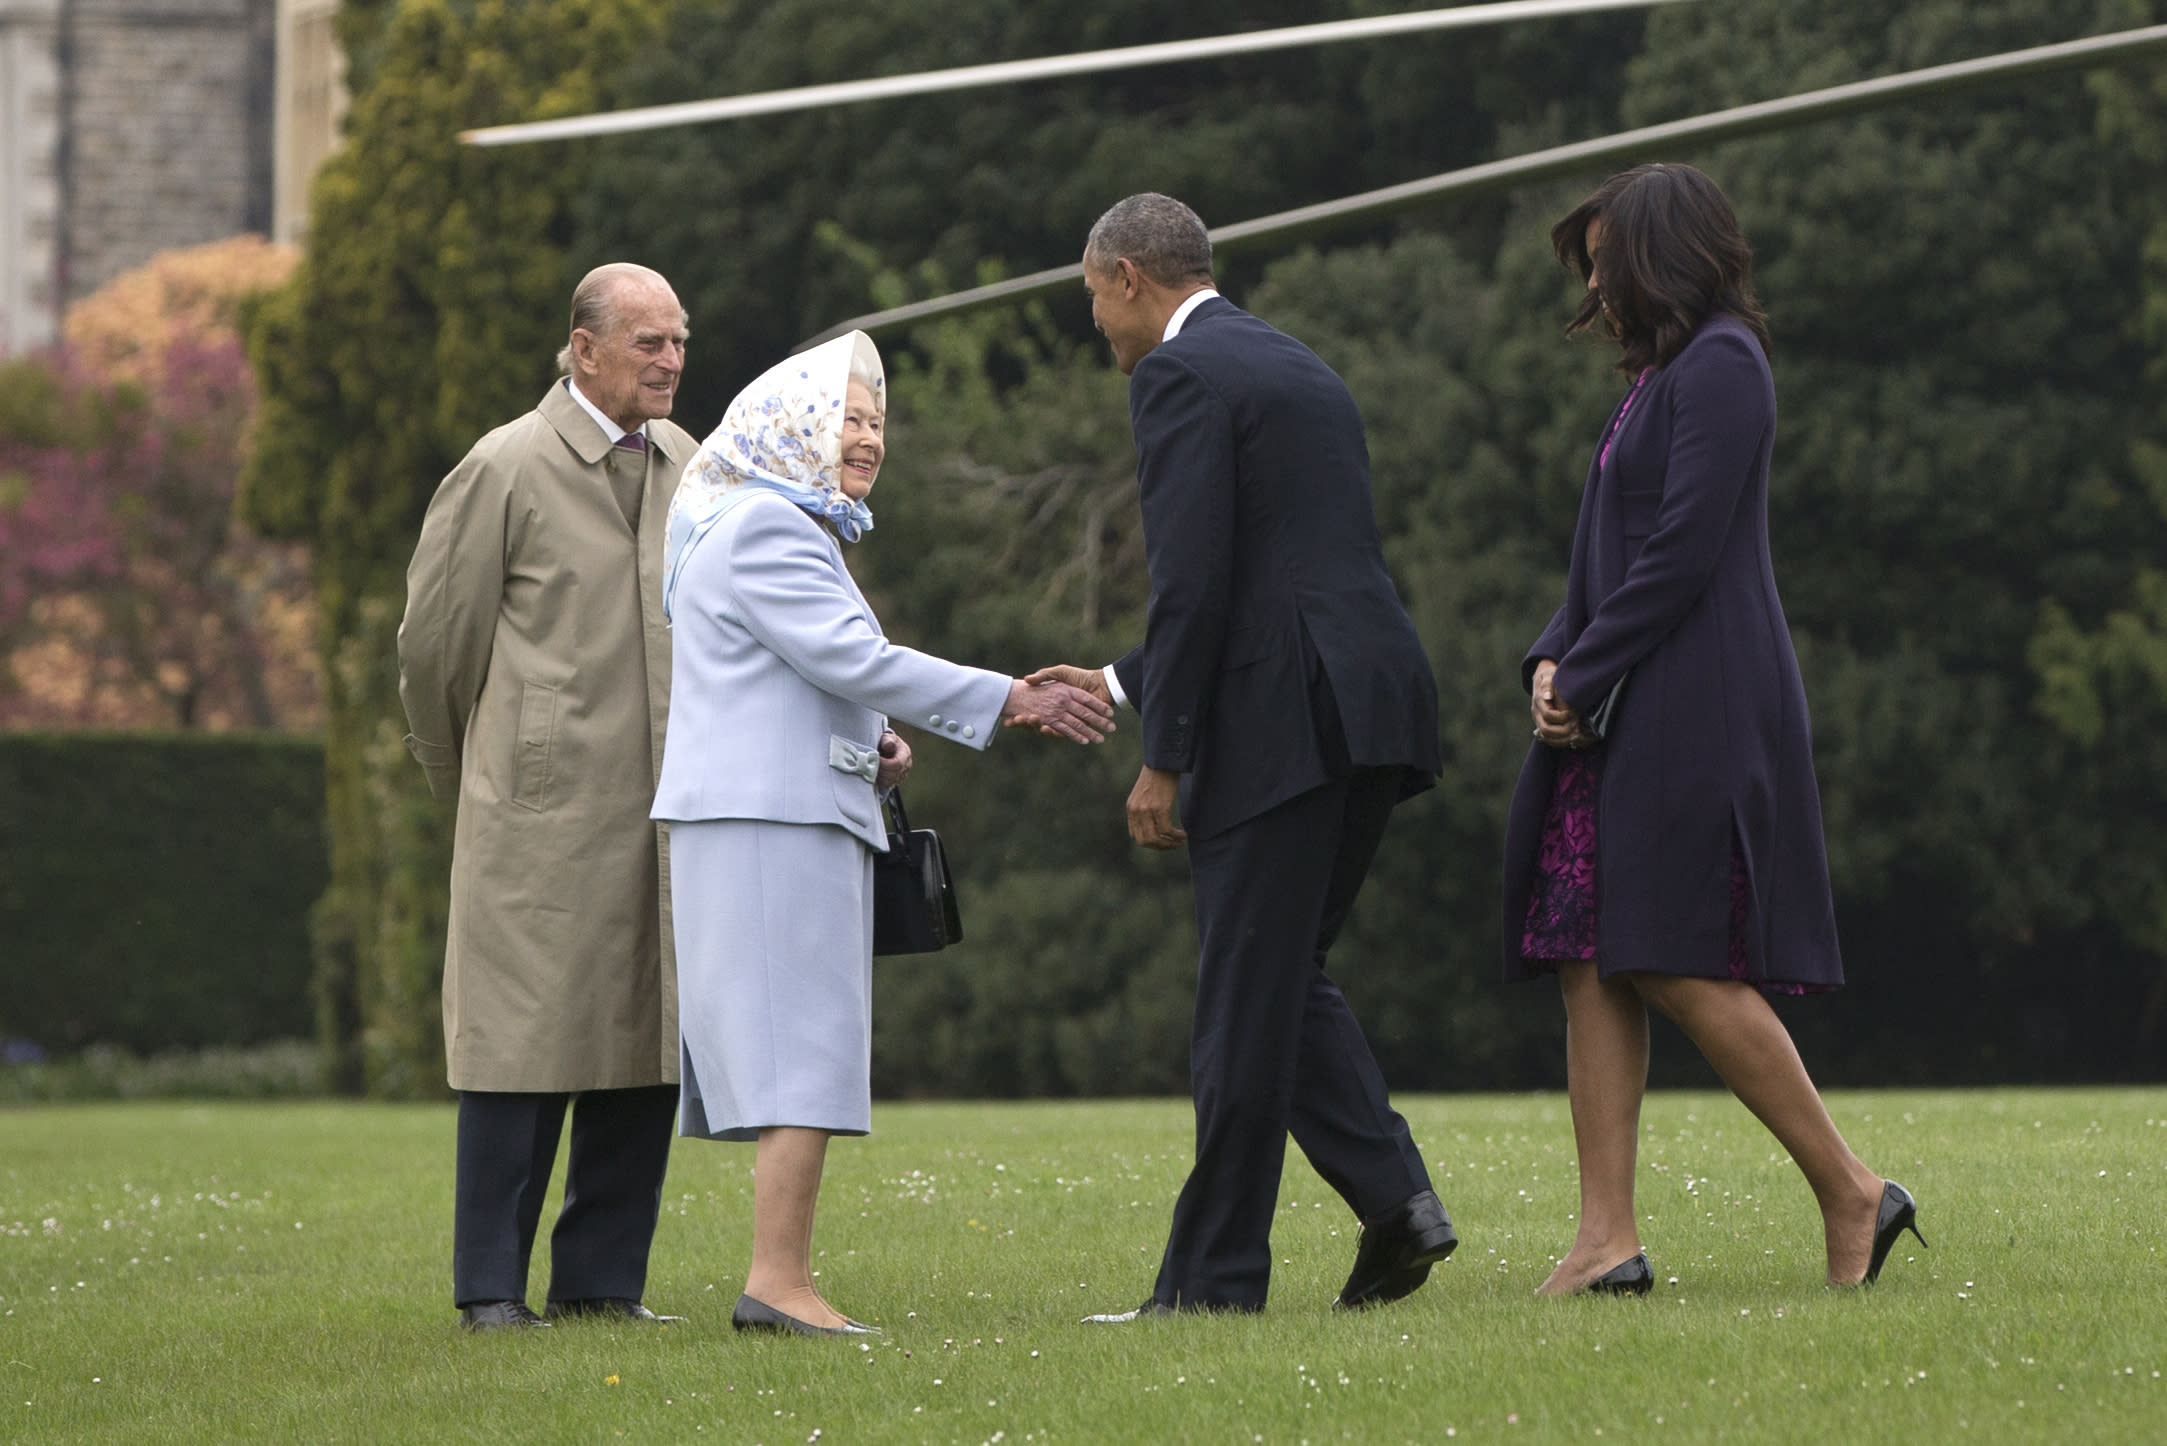 FILE - In this April 22, 2016 file photo President Barack Obama and first lady Michelle Obama are greeted by Queen Elizabeth II and Prince Philip as they arrive on Marine One at Windsor Castle in Windsor, England. With his departure from Berlin on Friday, Nov. 18, 2016 Obama will leave Europe for the last time as U.S. President. (AP Photo/Carolyn Kaster, file)